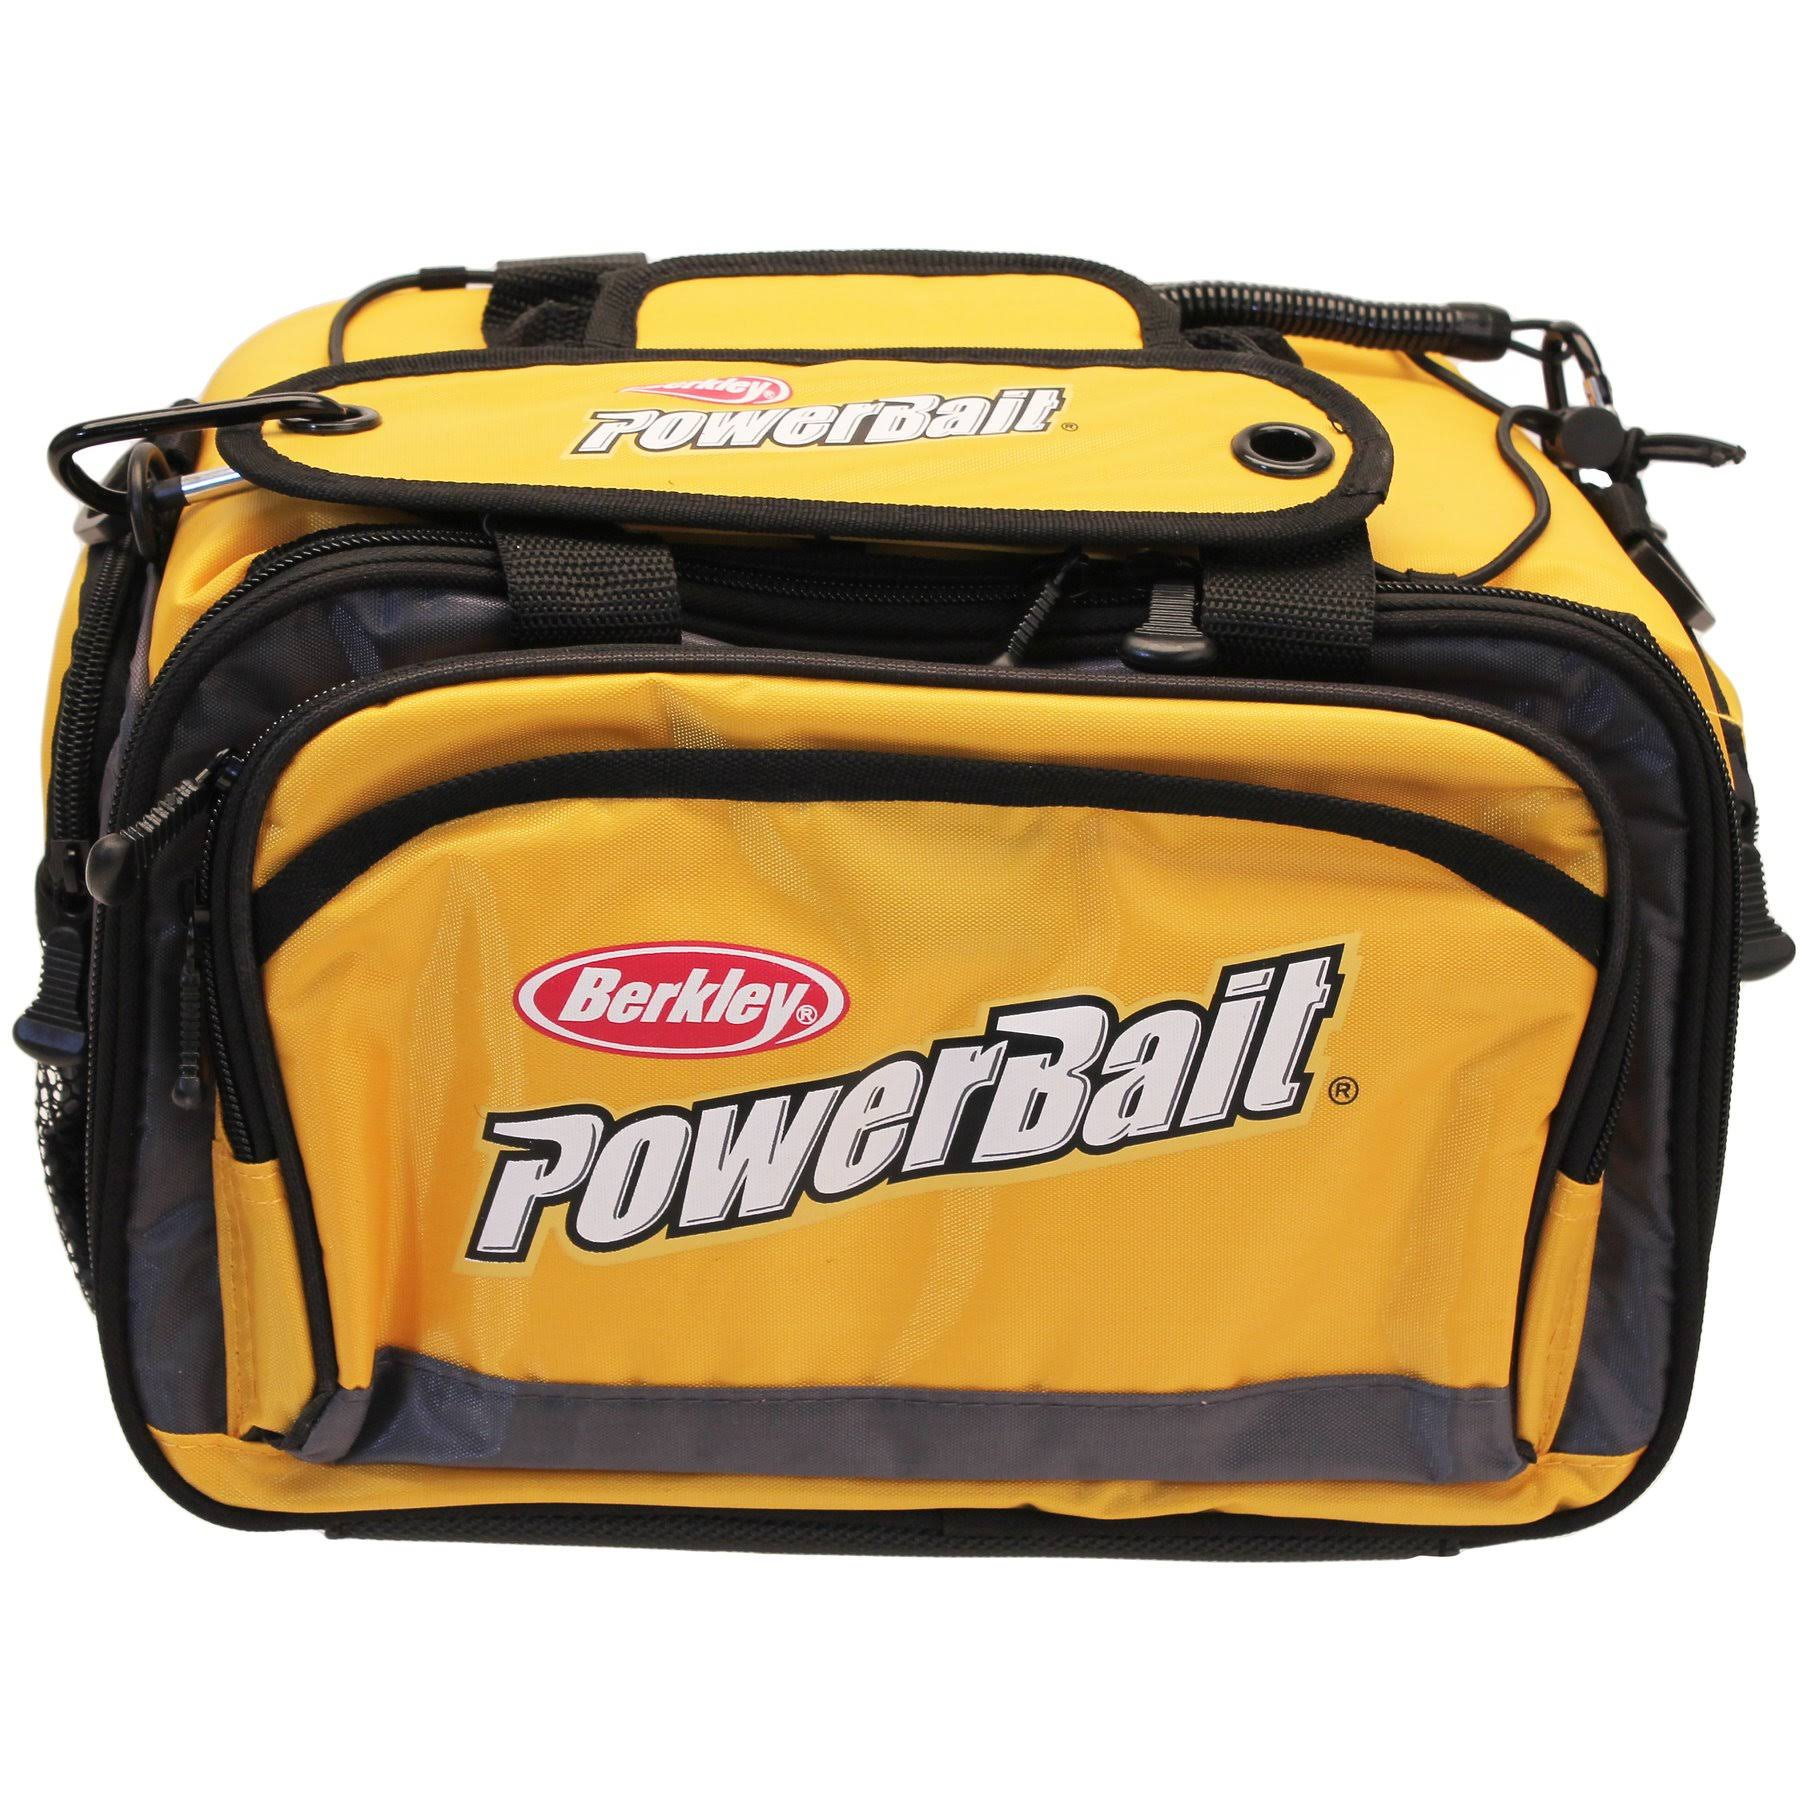 Berkley Power Bait Tackle Bag - Yellow, Medium